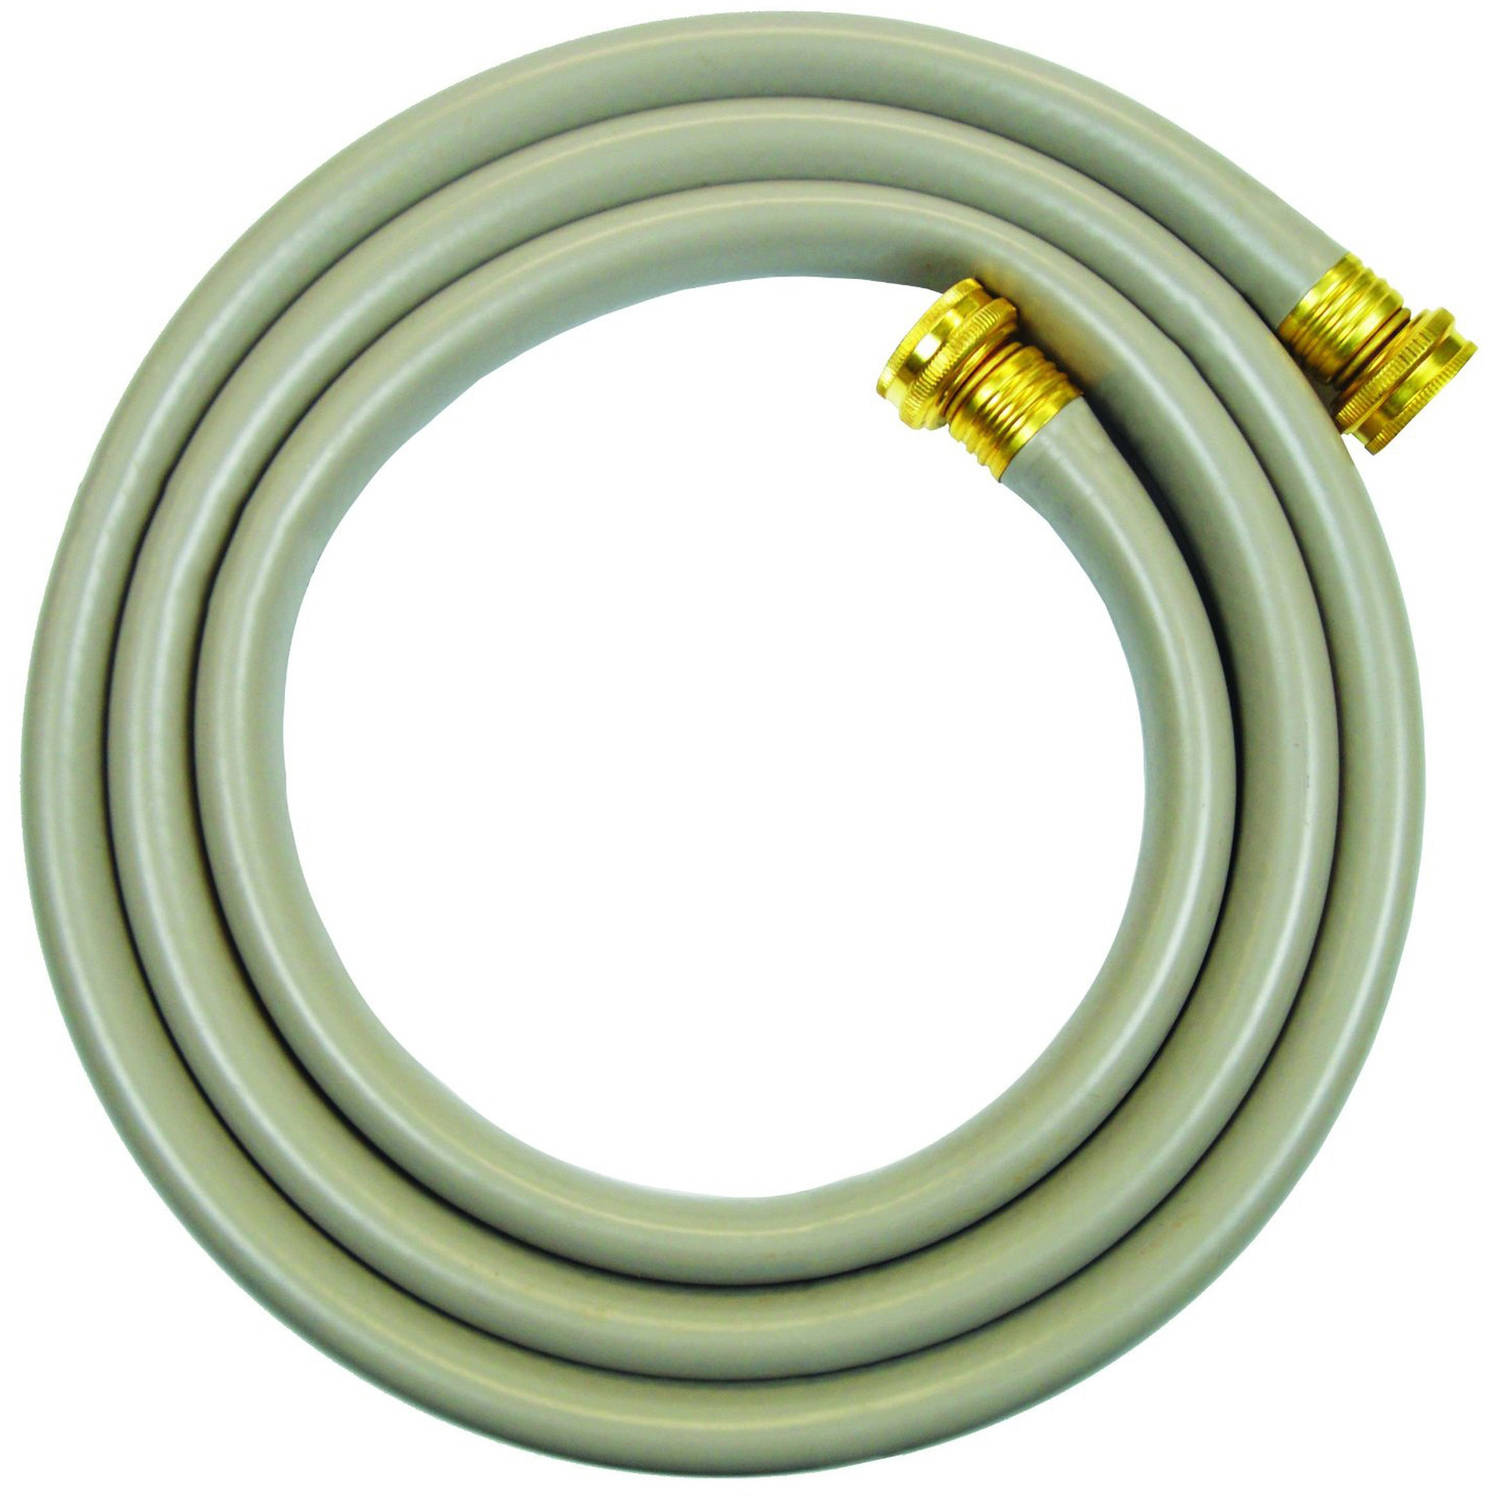 Apex 8836 6 Rubber Reel Leader Hose for Reels with Male